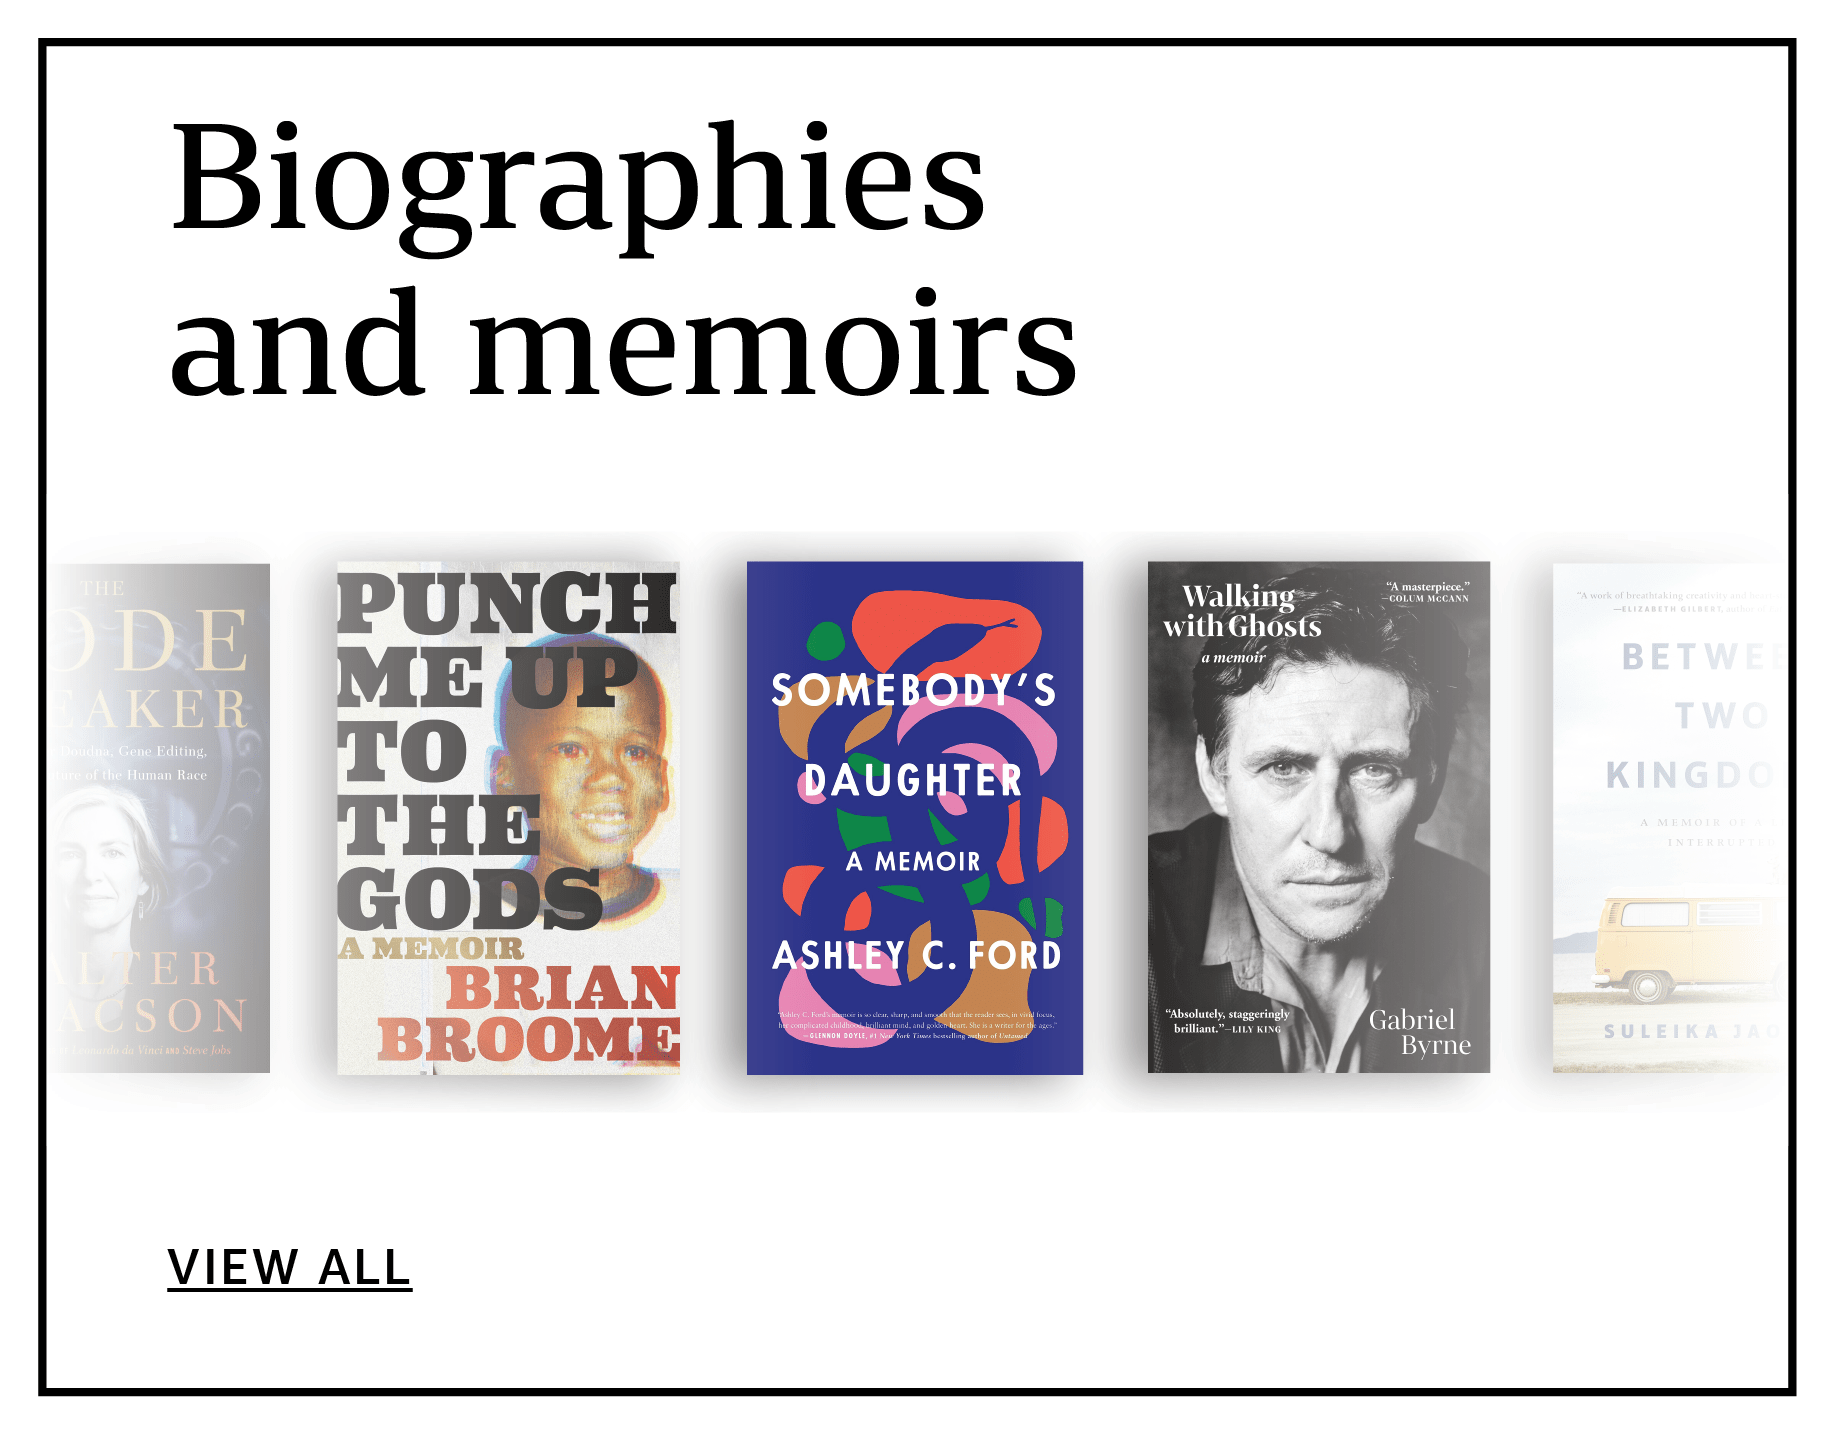 Biographies and memoirs